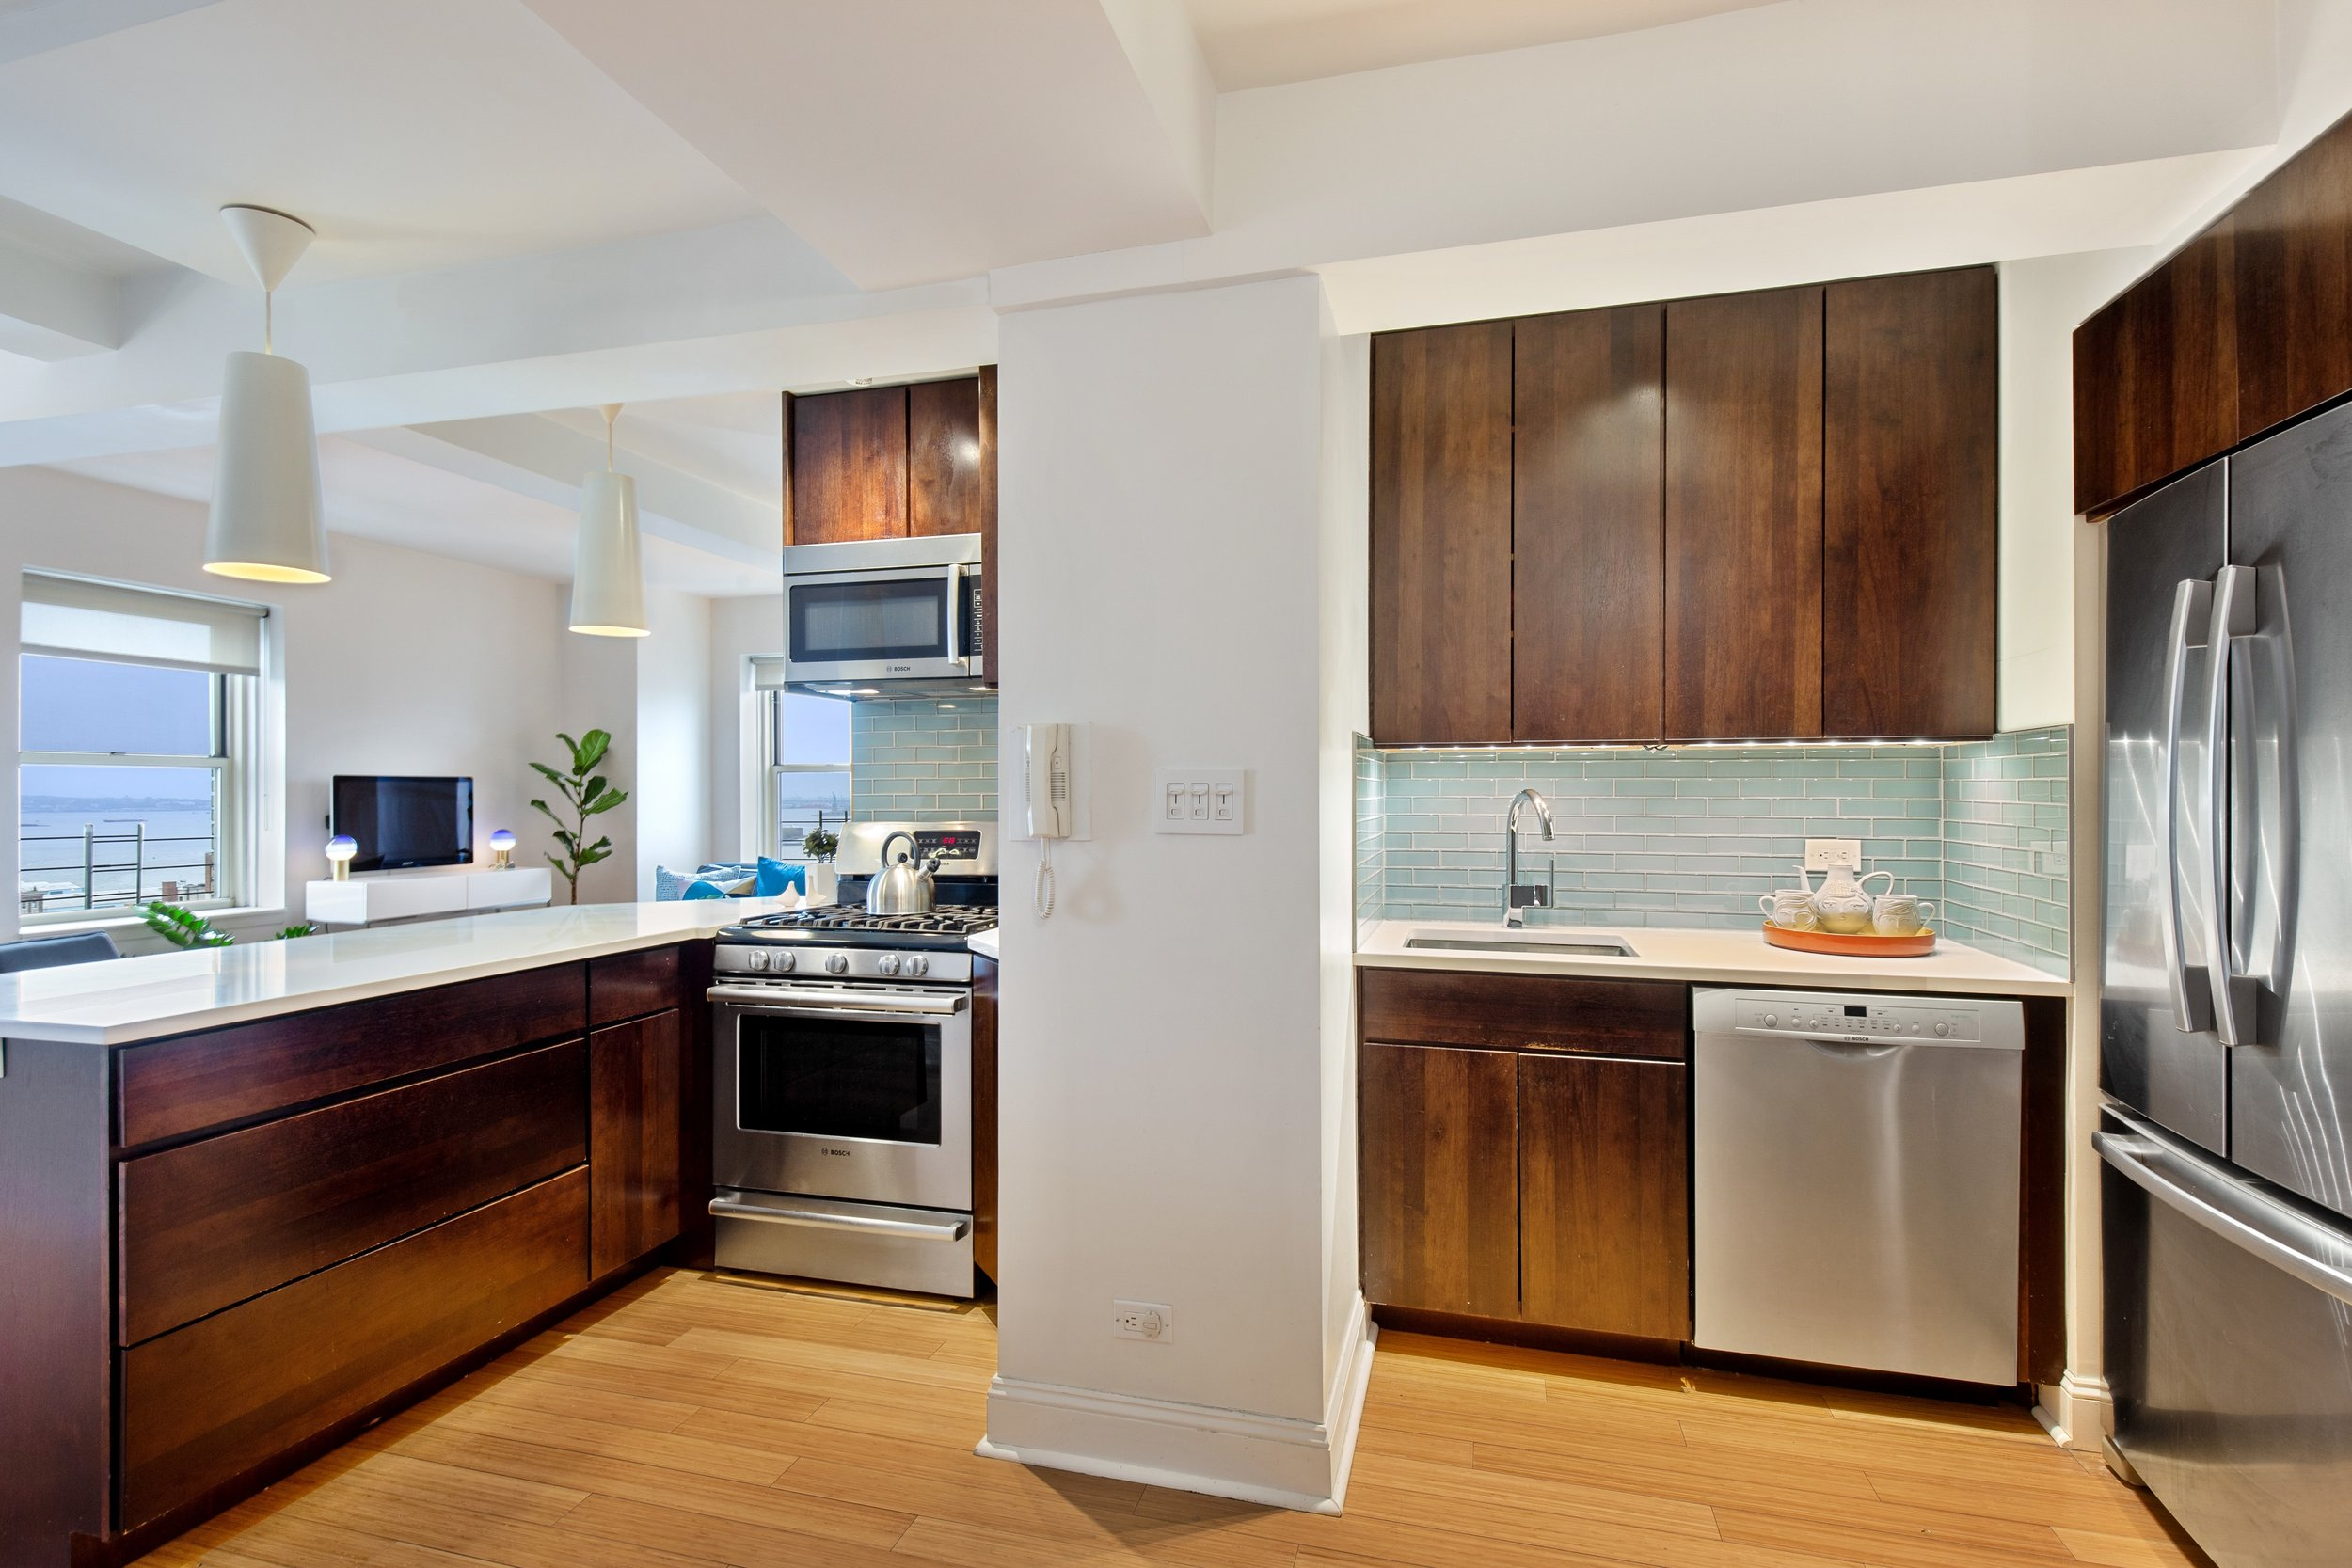 4_111HicksStreet_19B_177001_Kitchen_HiRes.jpg